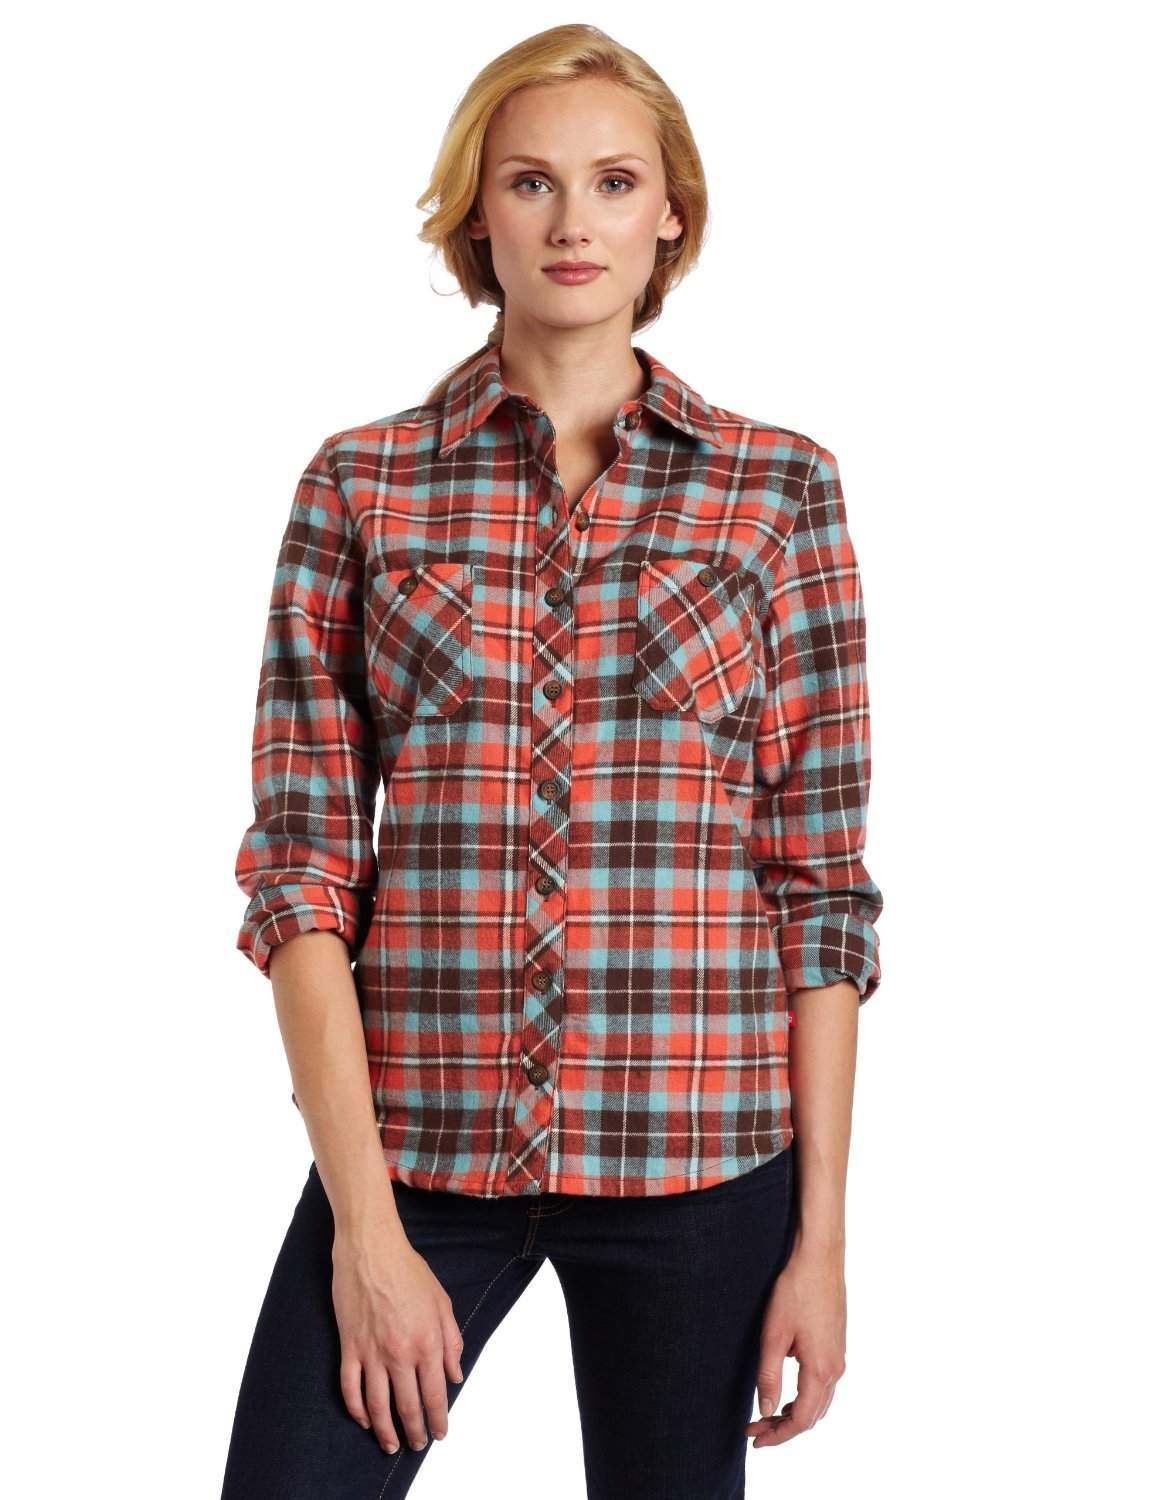 Womens flannel shirts cheap flannel shirts for women for Womens plaid flannel shirts